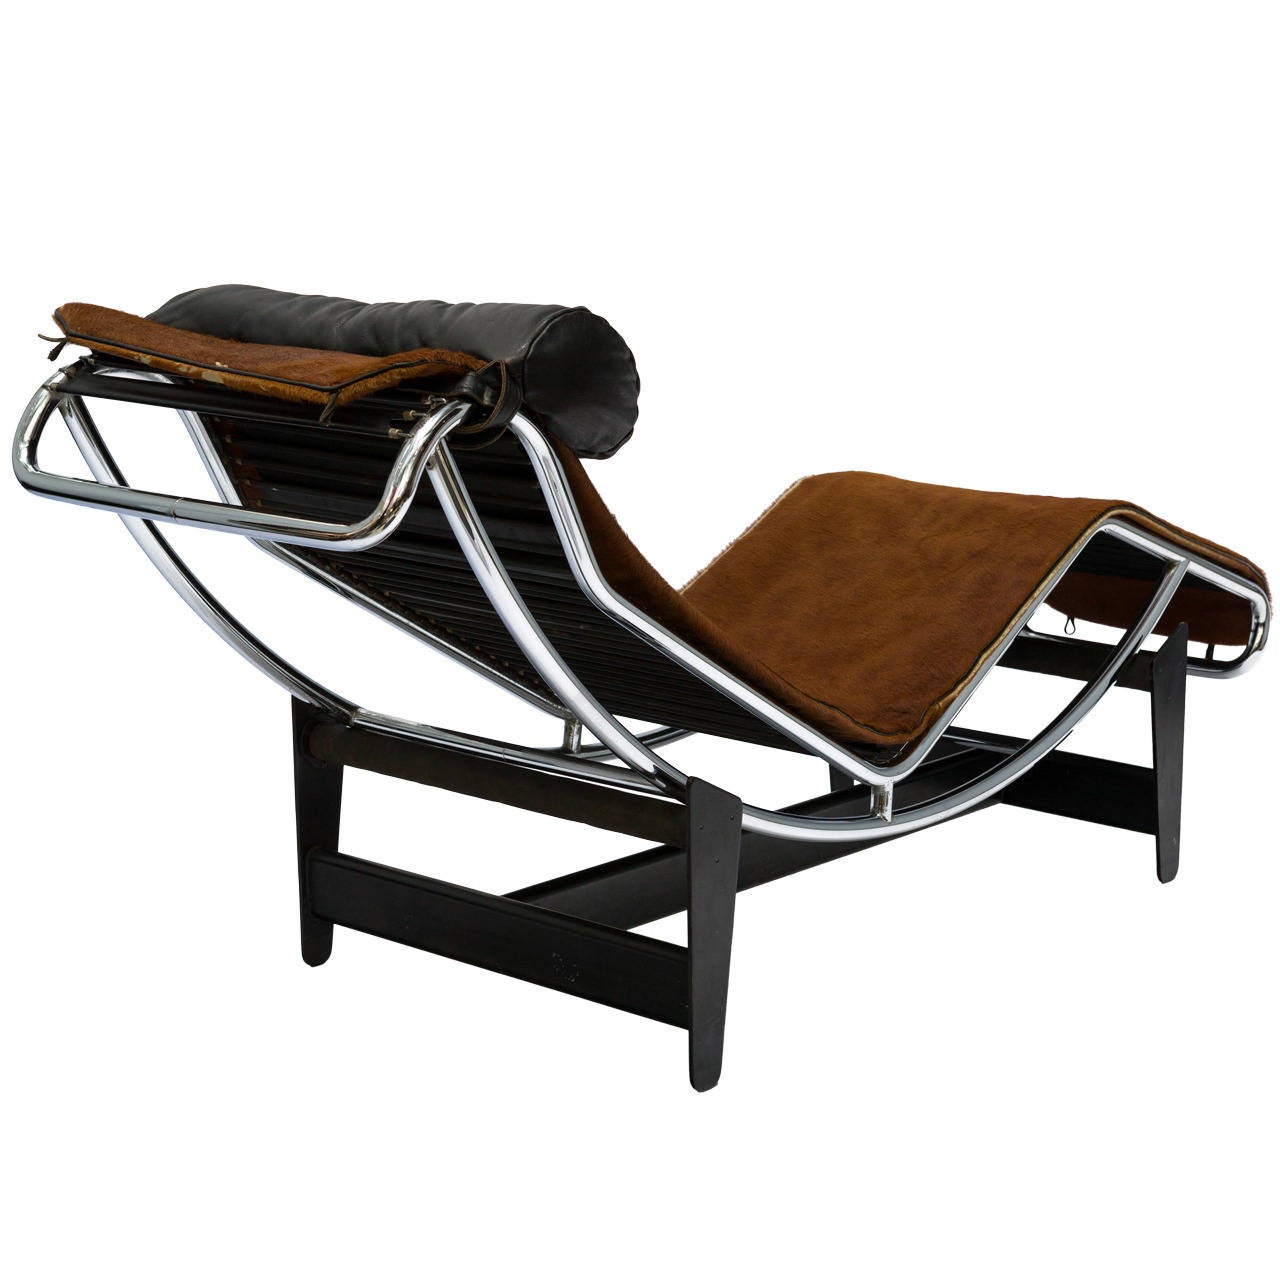 Le corbusier lc4 chaise lounge chair in cowhide for sale for Chaise longue designer